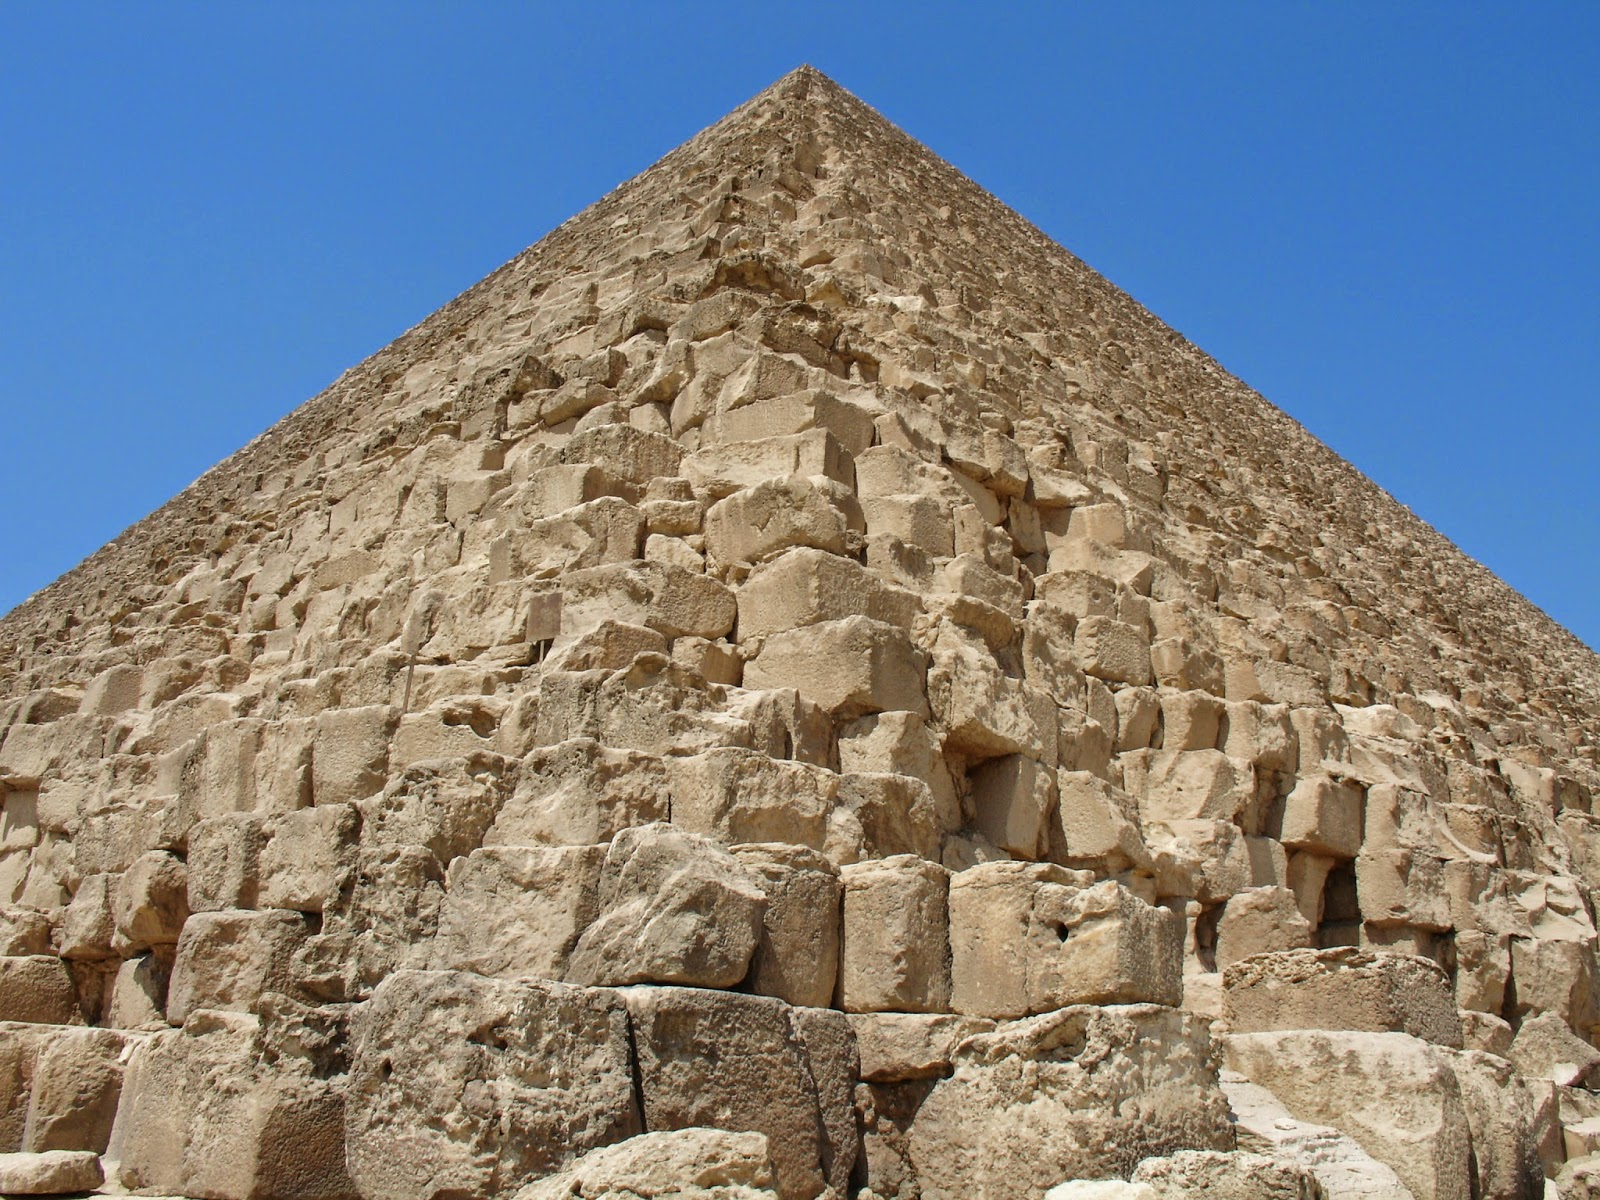 Egyptians moved pyramid stones over wet sand